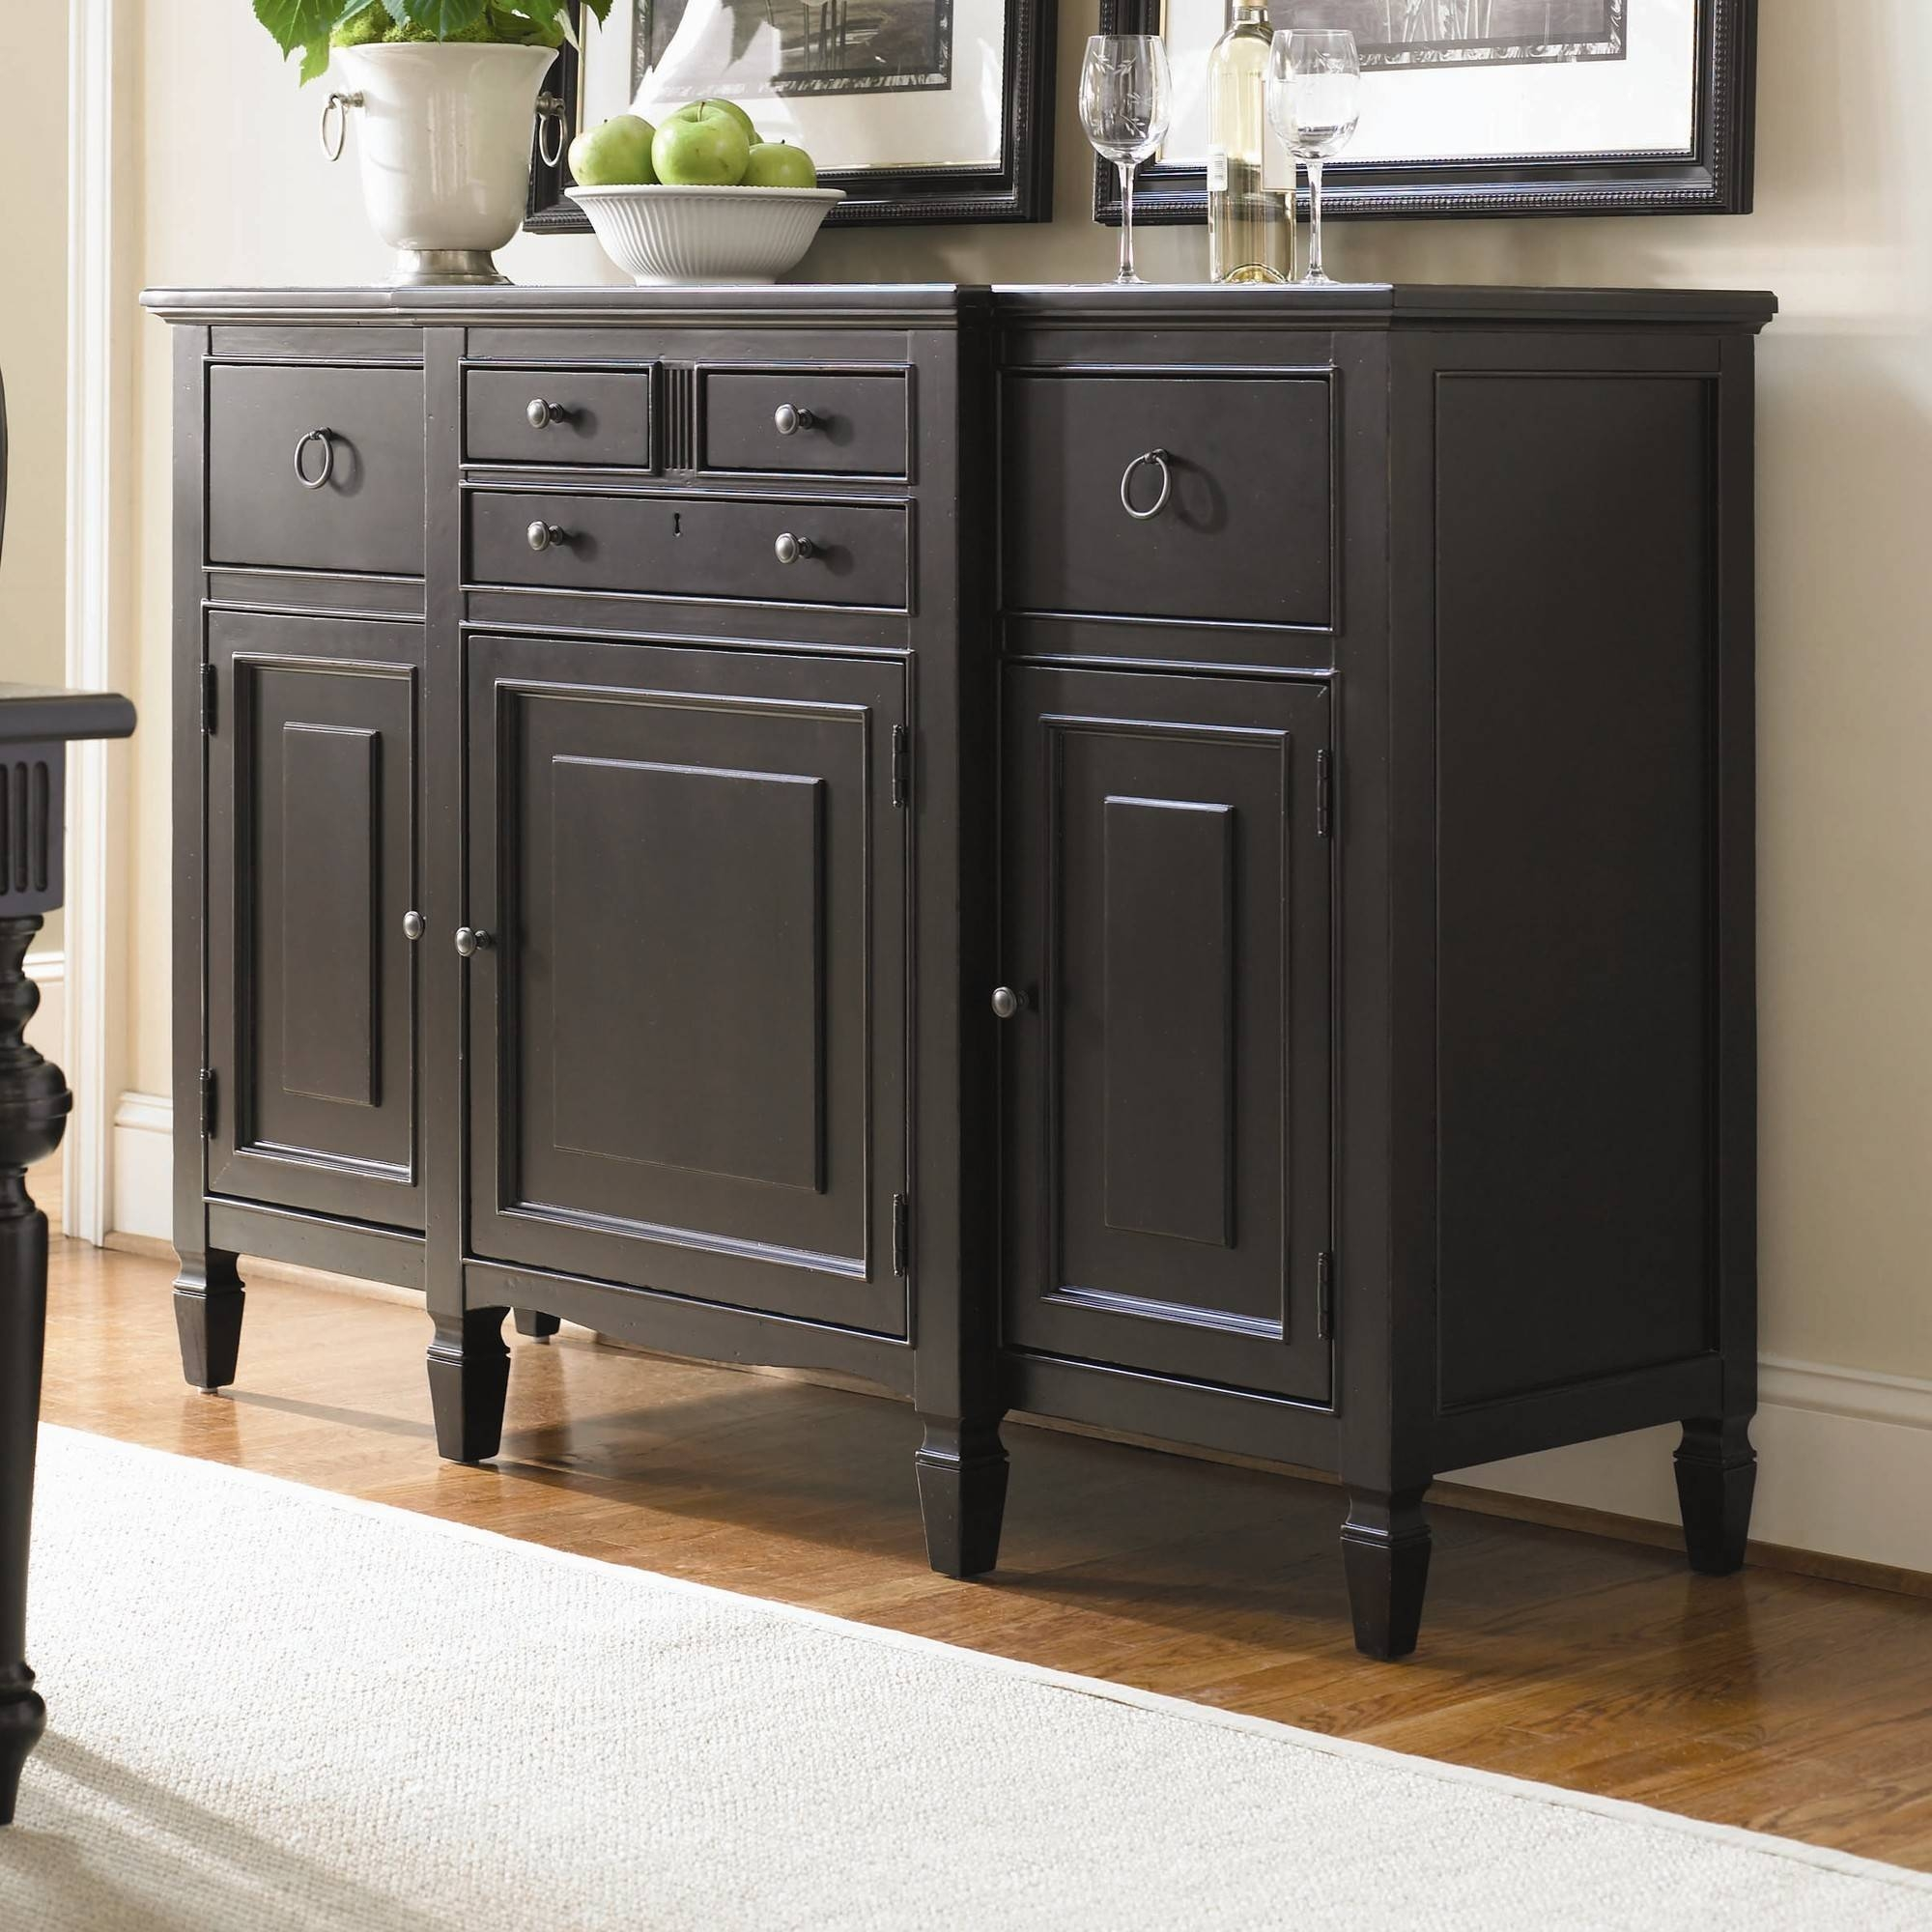 Best Of Buffet Sideboard Server – Bjdgjy With Regard To Most Recent Dining Room Buffets Sideboards (#1 of 15)